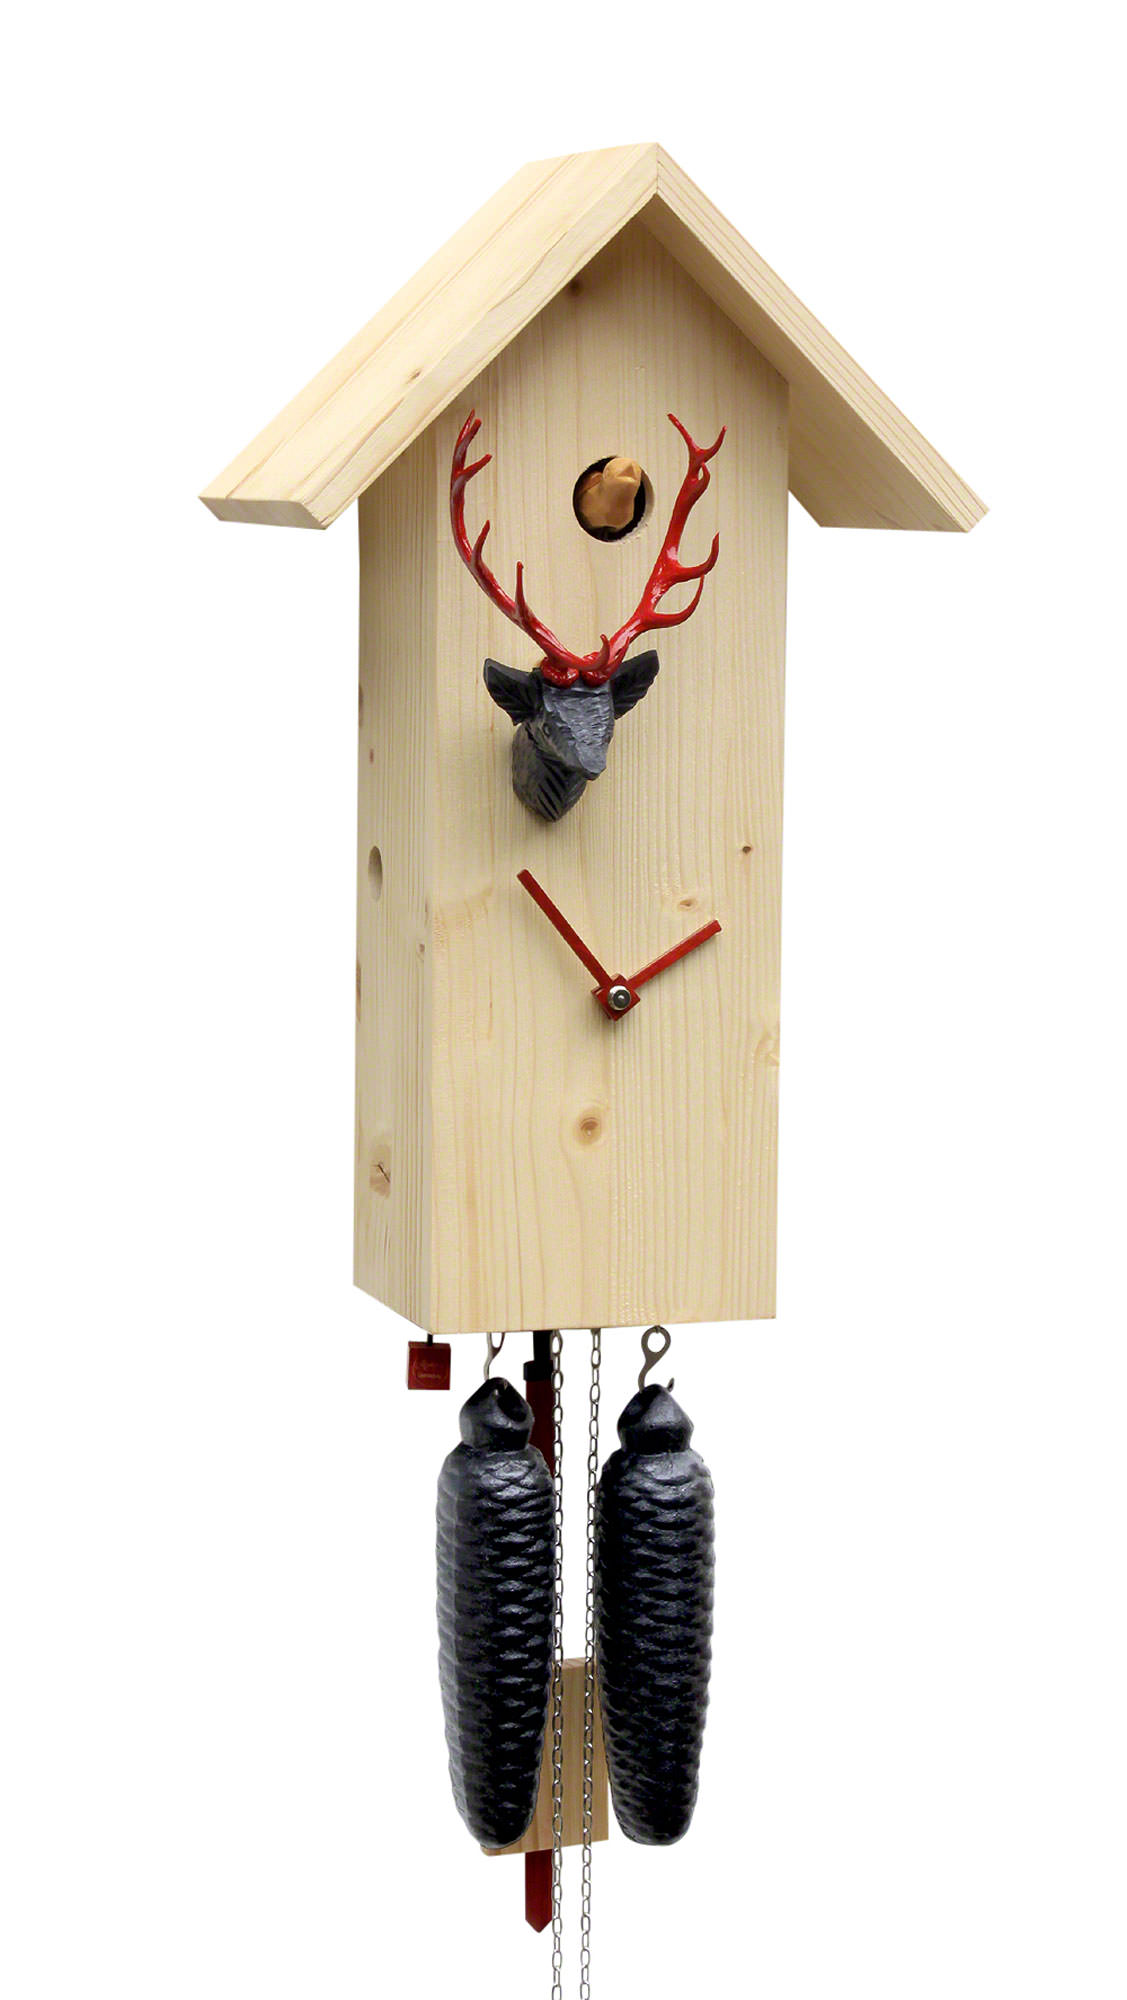 Cuckoo Clock 8 Day Movement Modern Art Style 41cm By Rombach Haas Slm3h 11